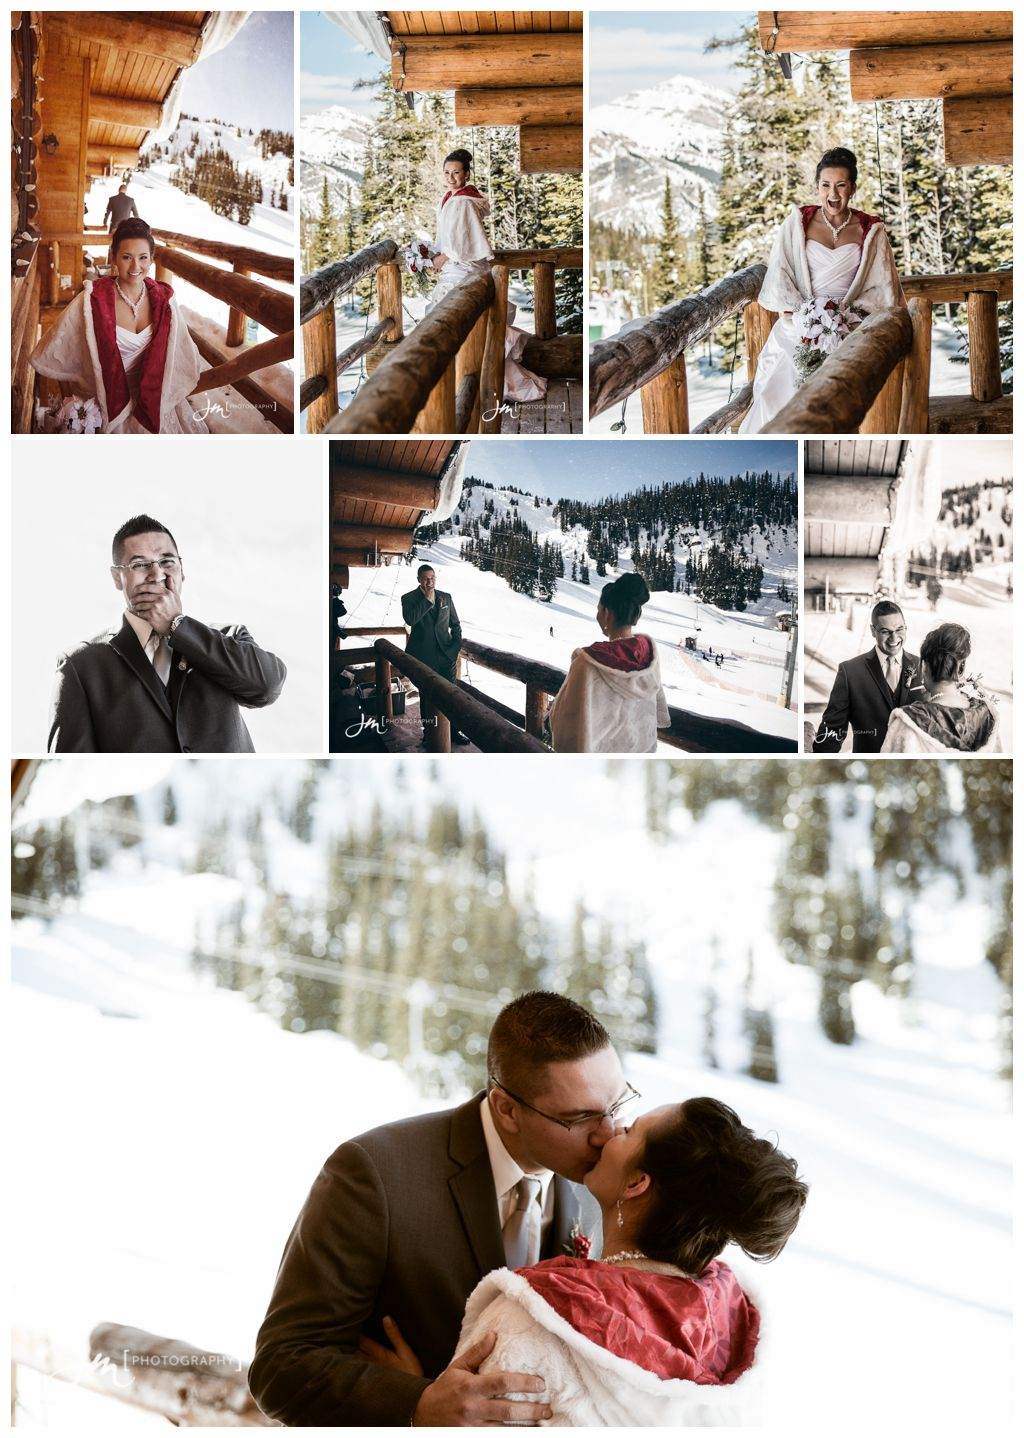 150223_3027-Banff-Wedding-Photographer-JM_Photography-Jeremy-Martel-Sunshine-Village